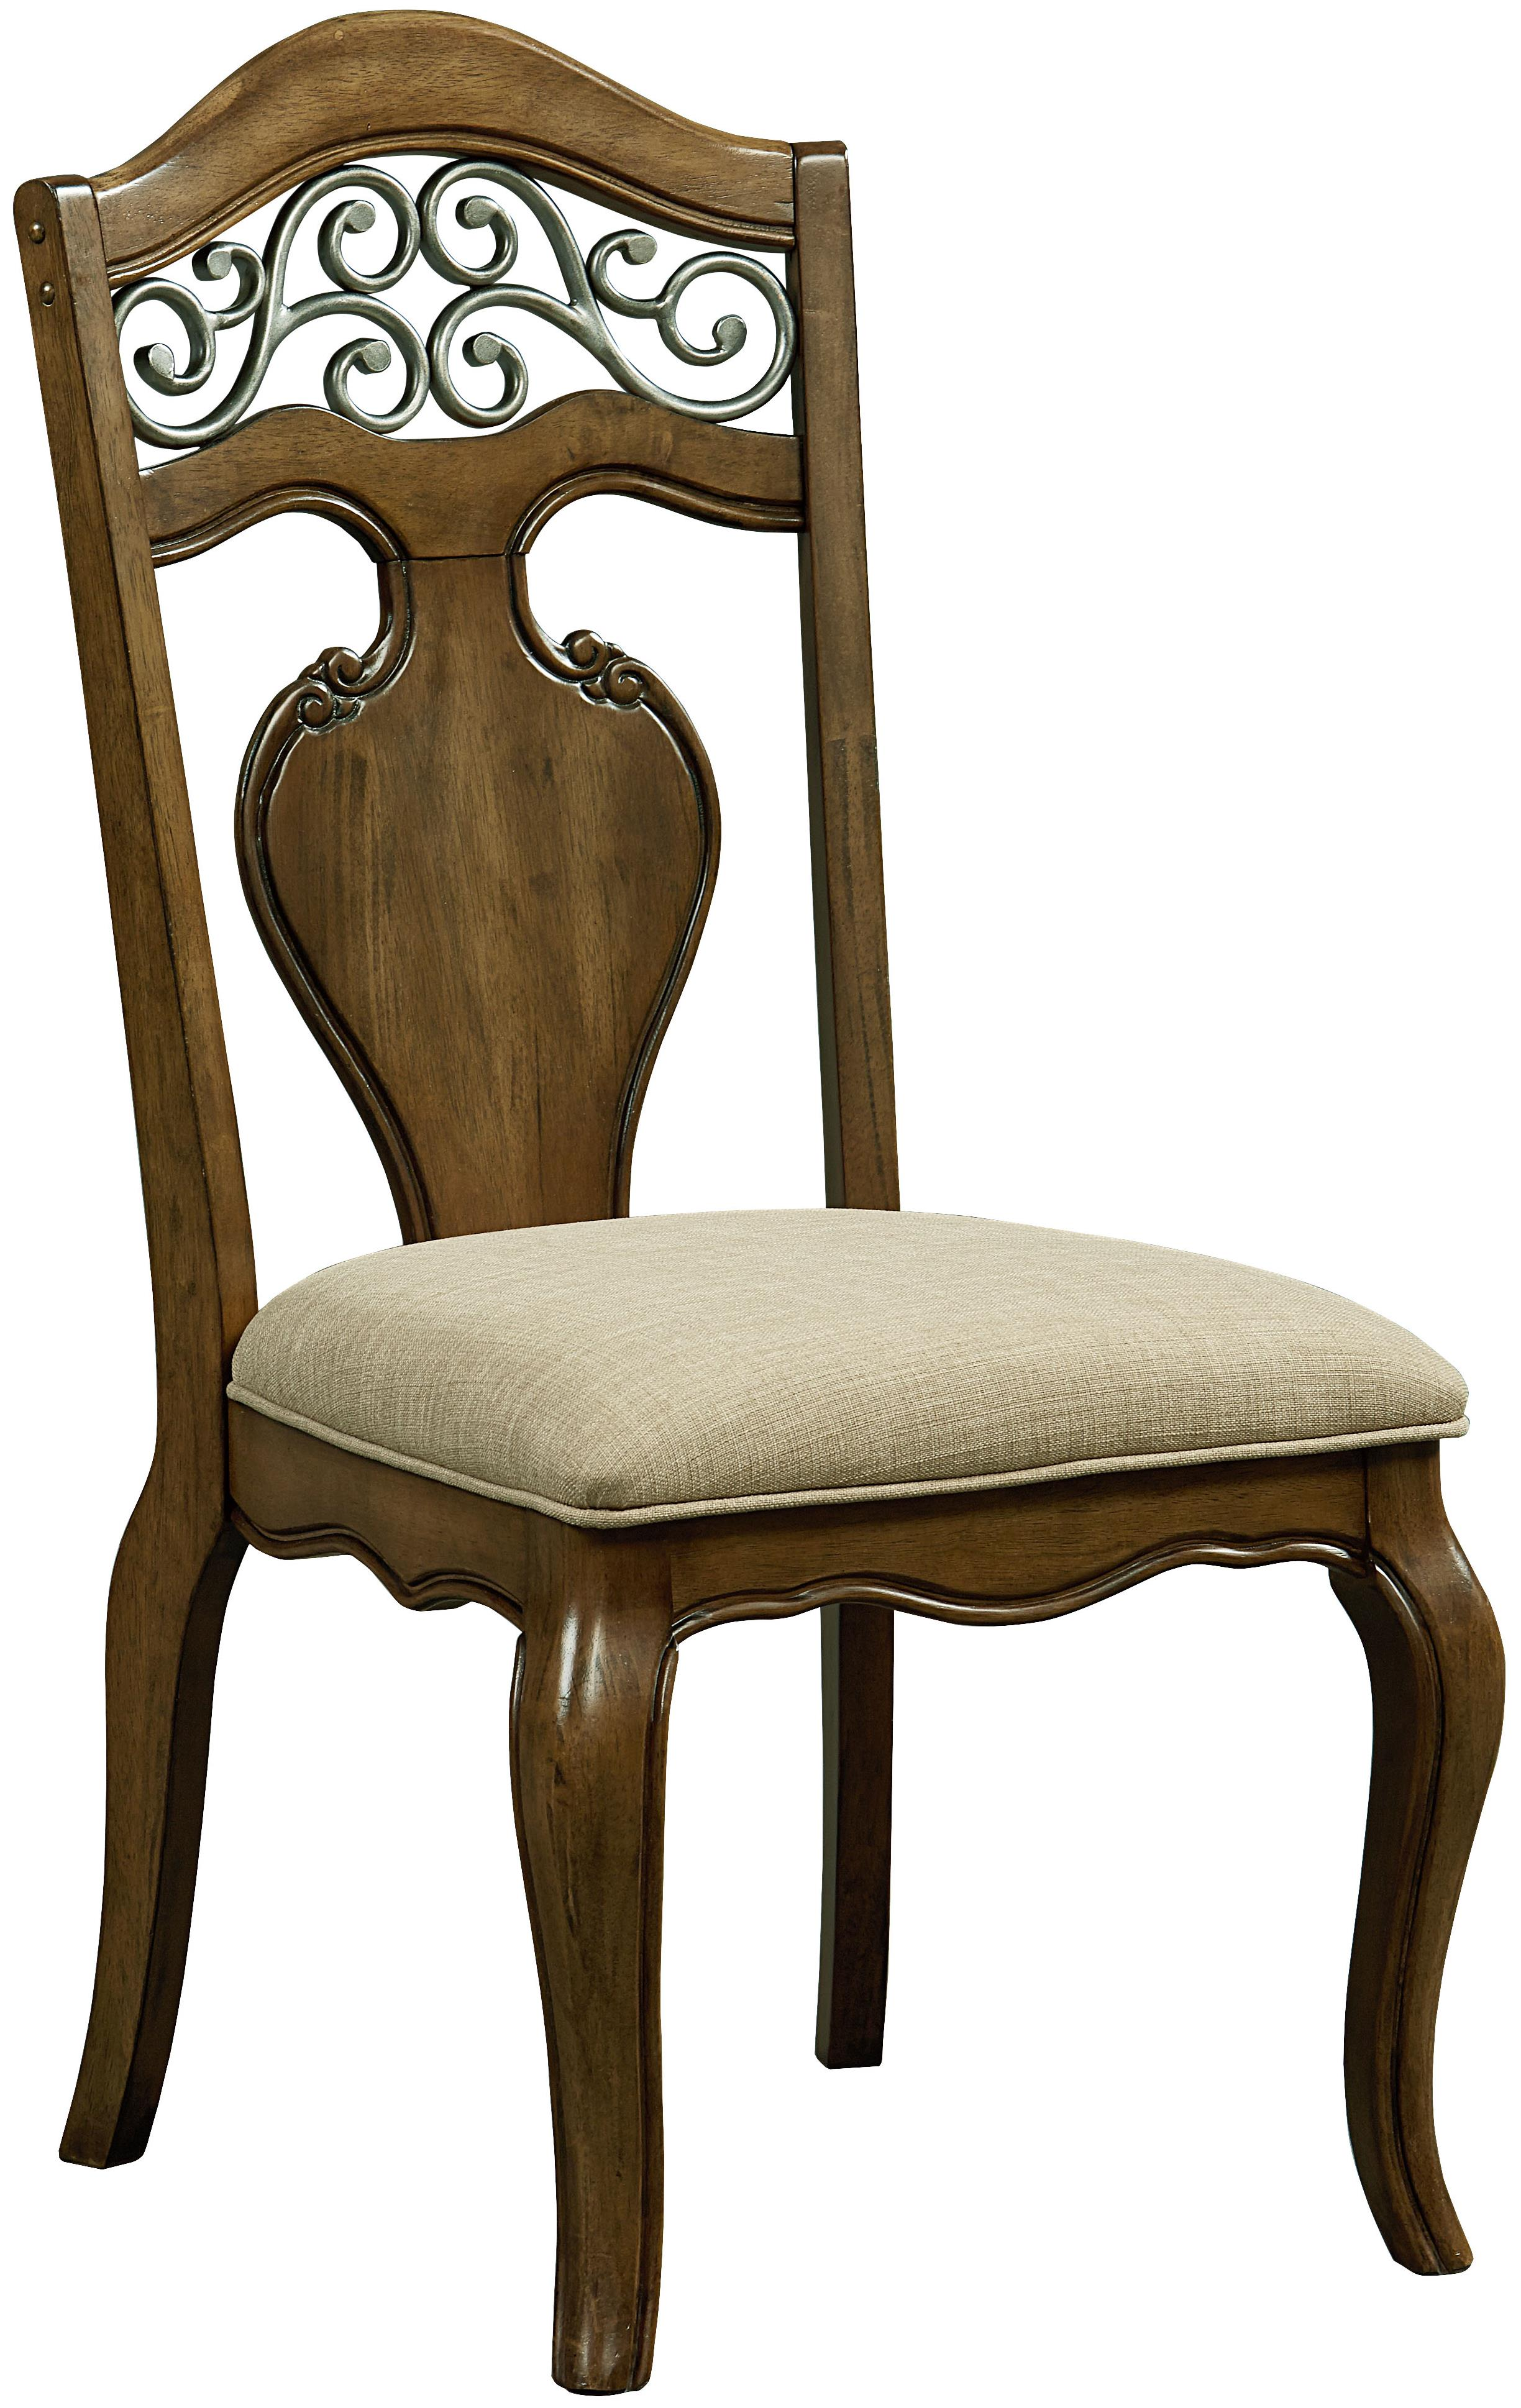 Standard Furniture Monterey Side Chair               - Item Number: 14364